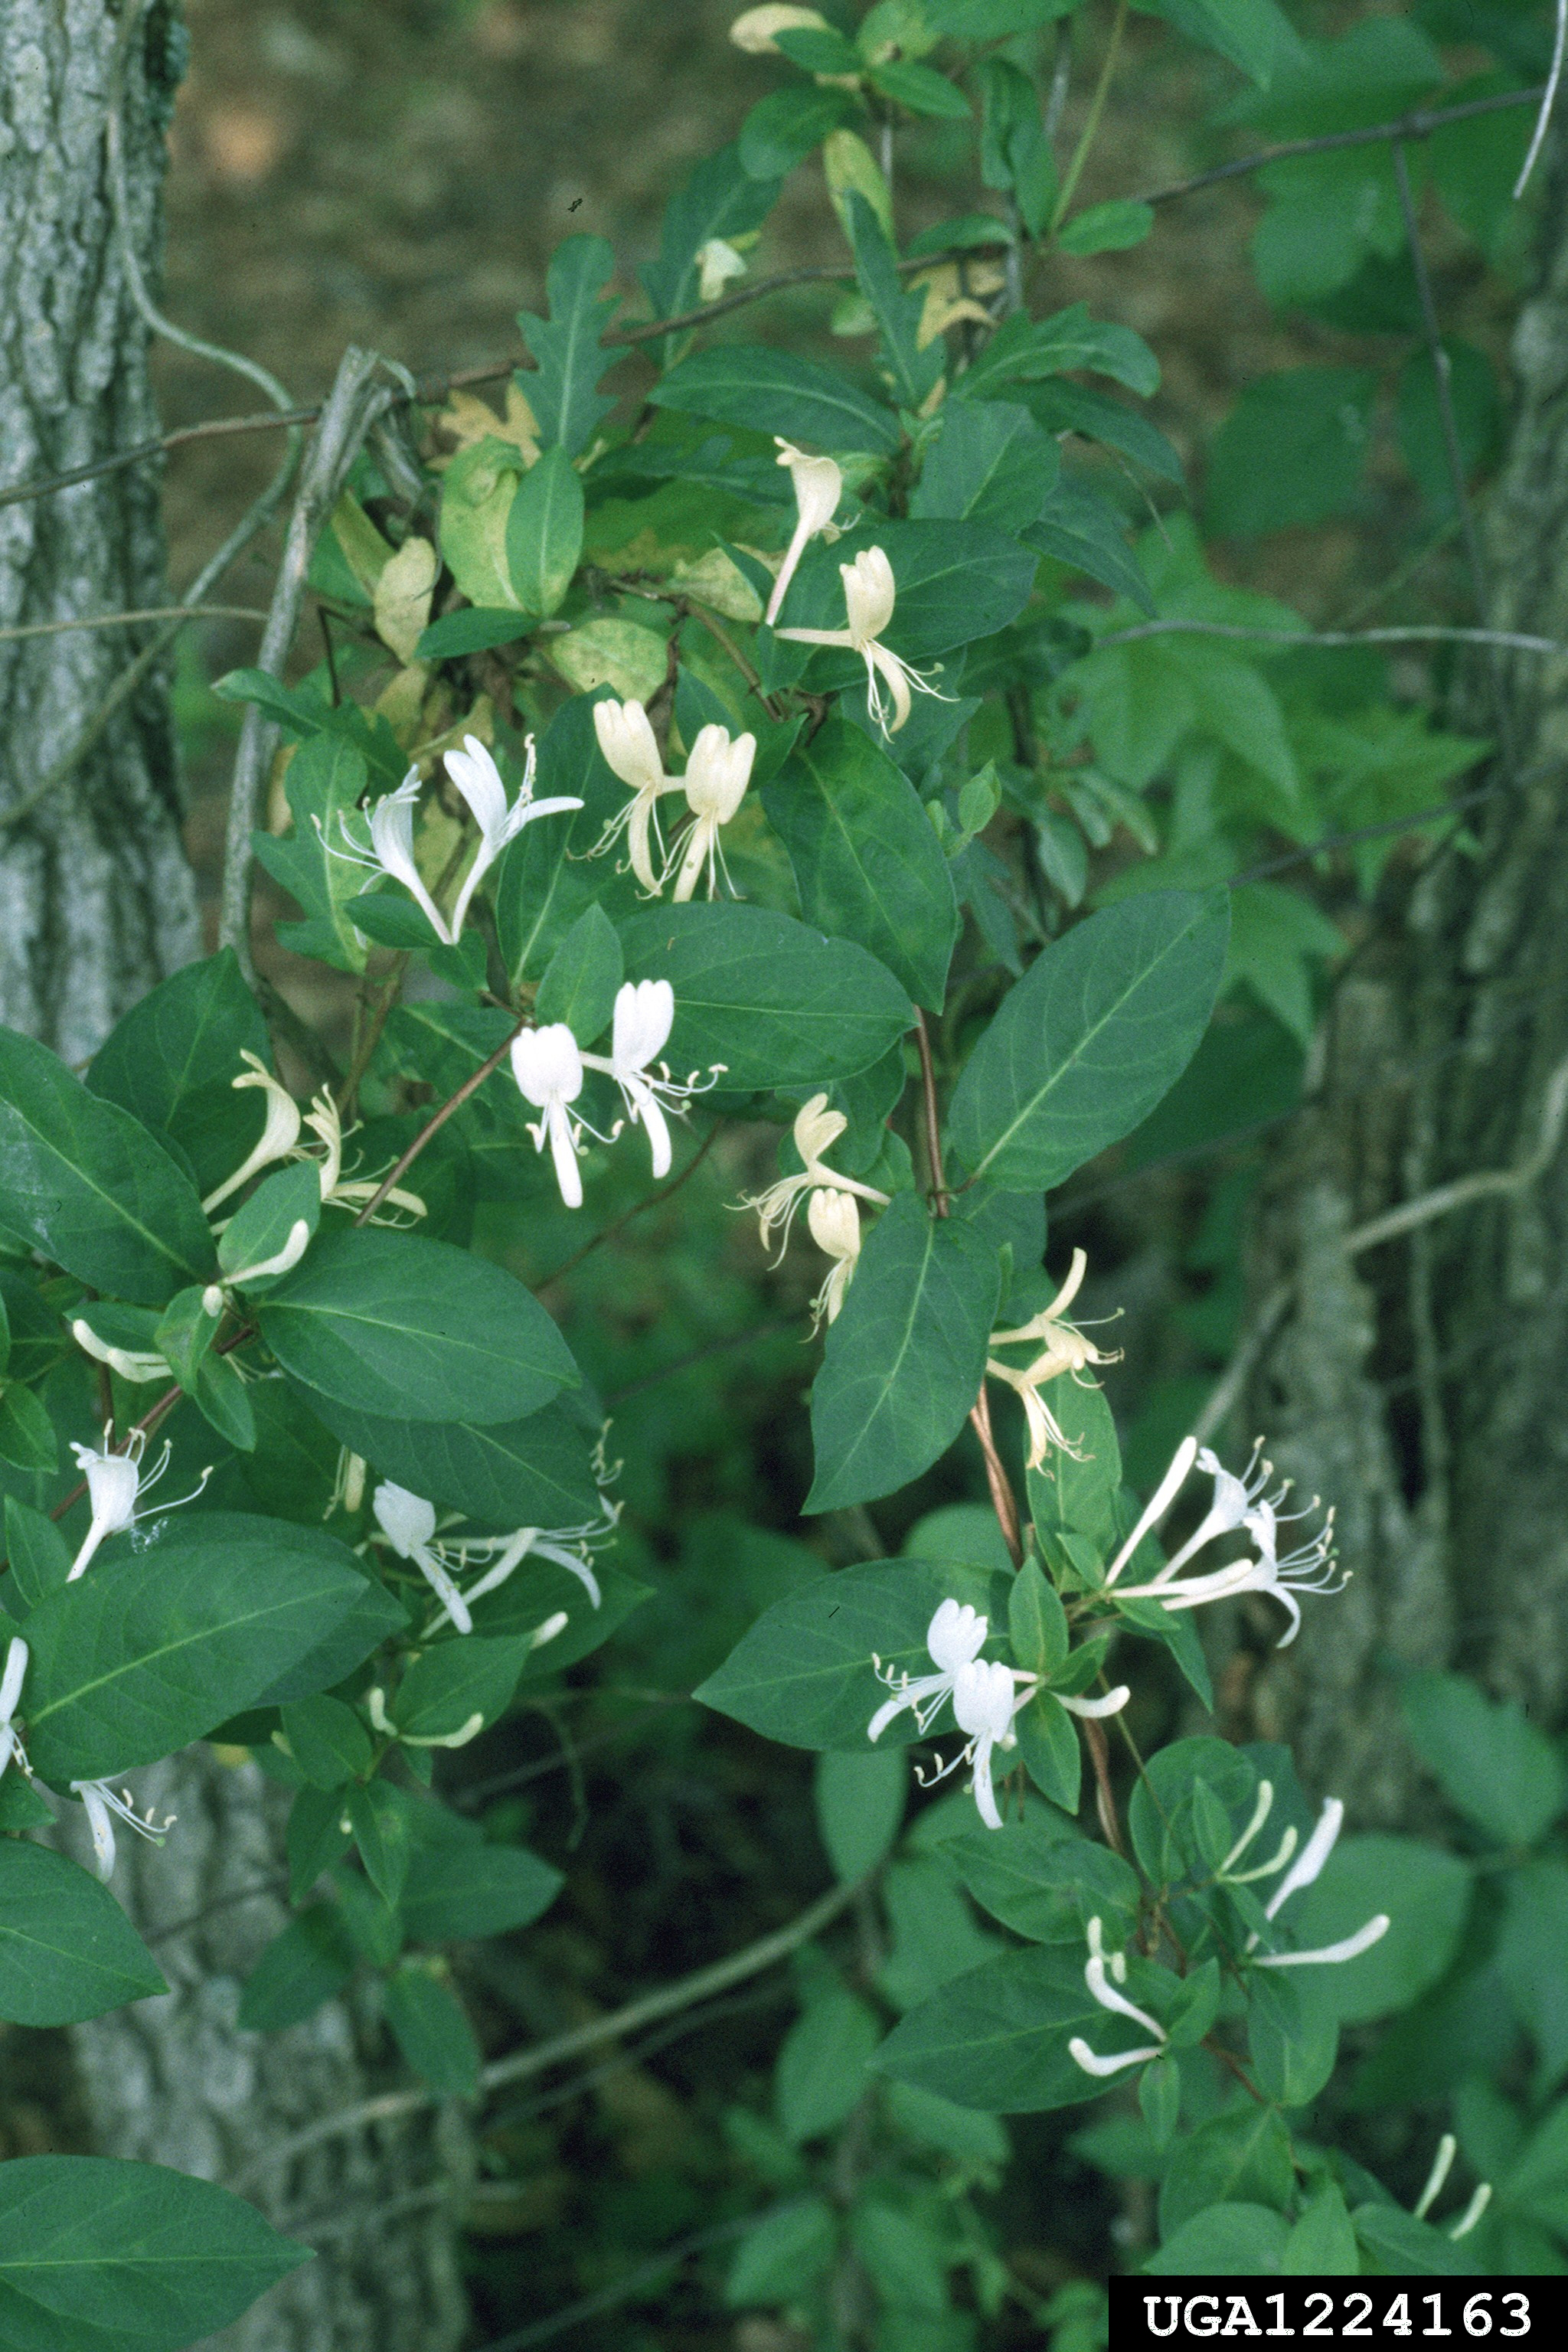 Most Georgians have fond childhood memories of honeysuckle vines, but the species of the fragrant vine that is most common is actually an invasive.